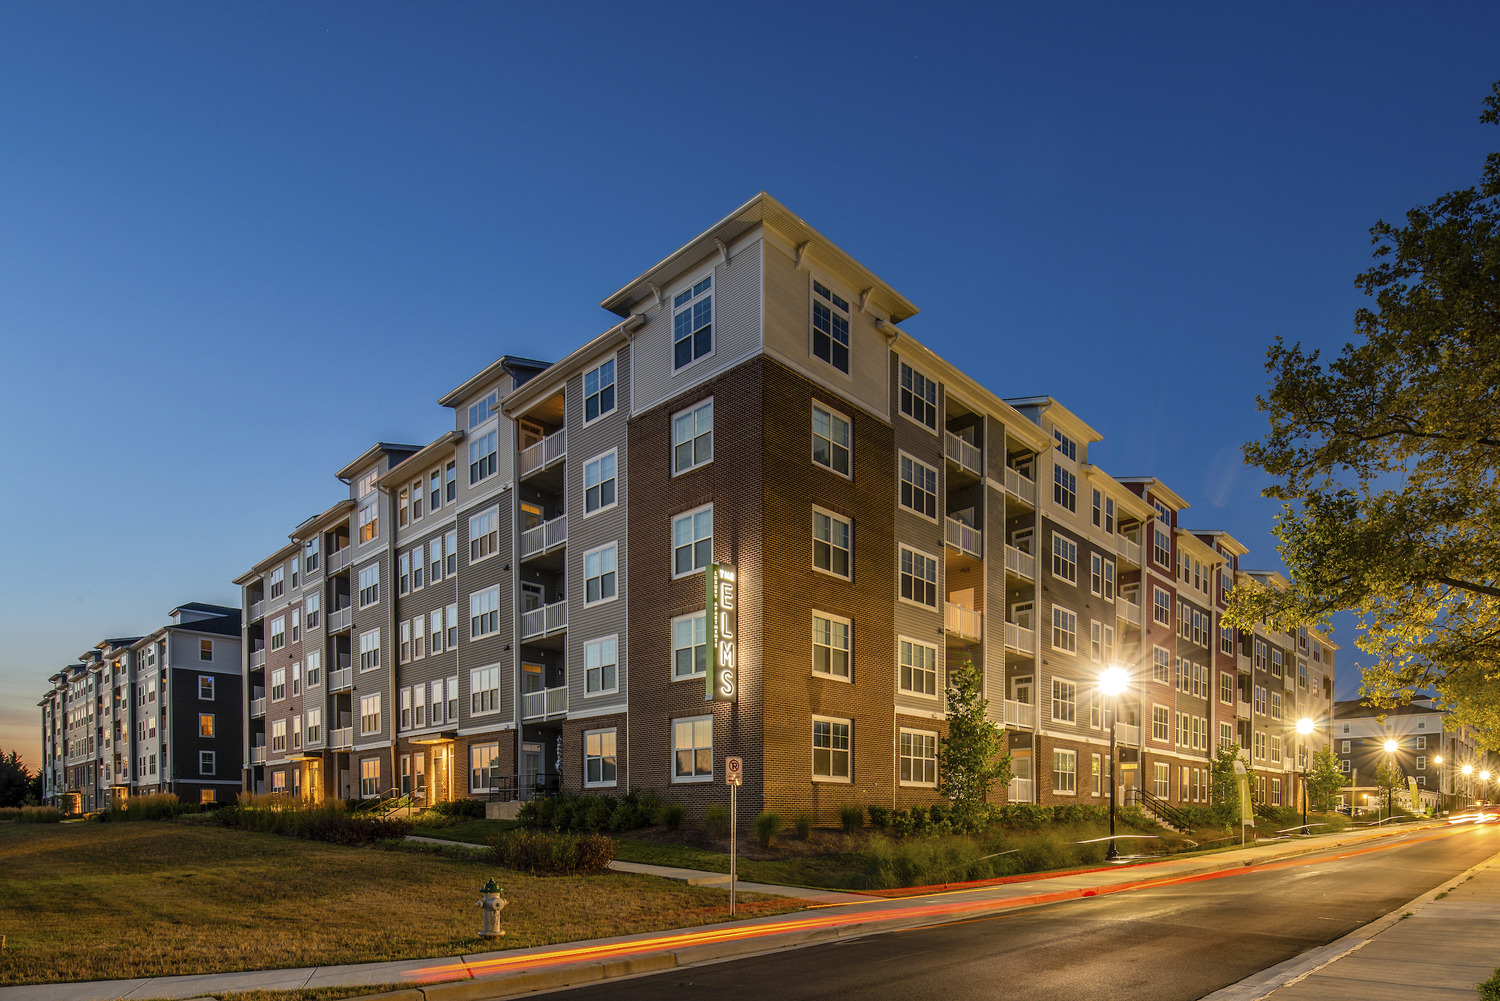 CBG builds The Elms at Century, a 300-Unit Market-Rate Apartment Community with Amenities in Germantown, MD